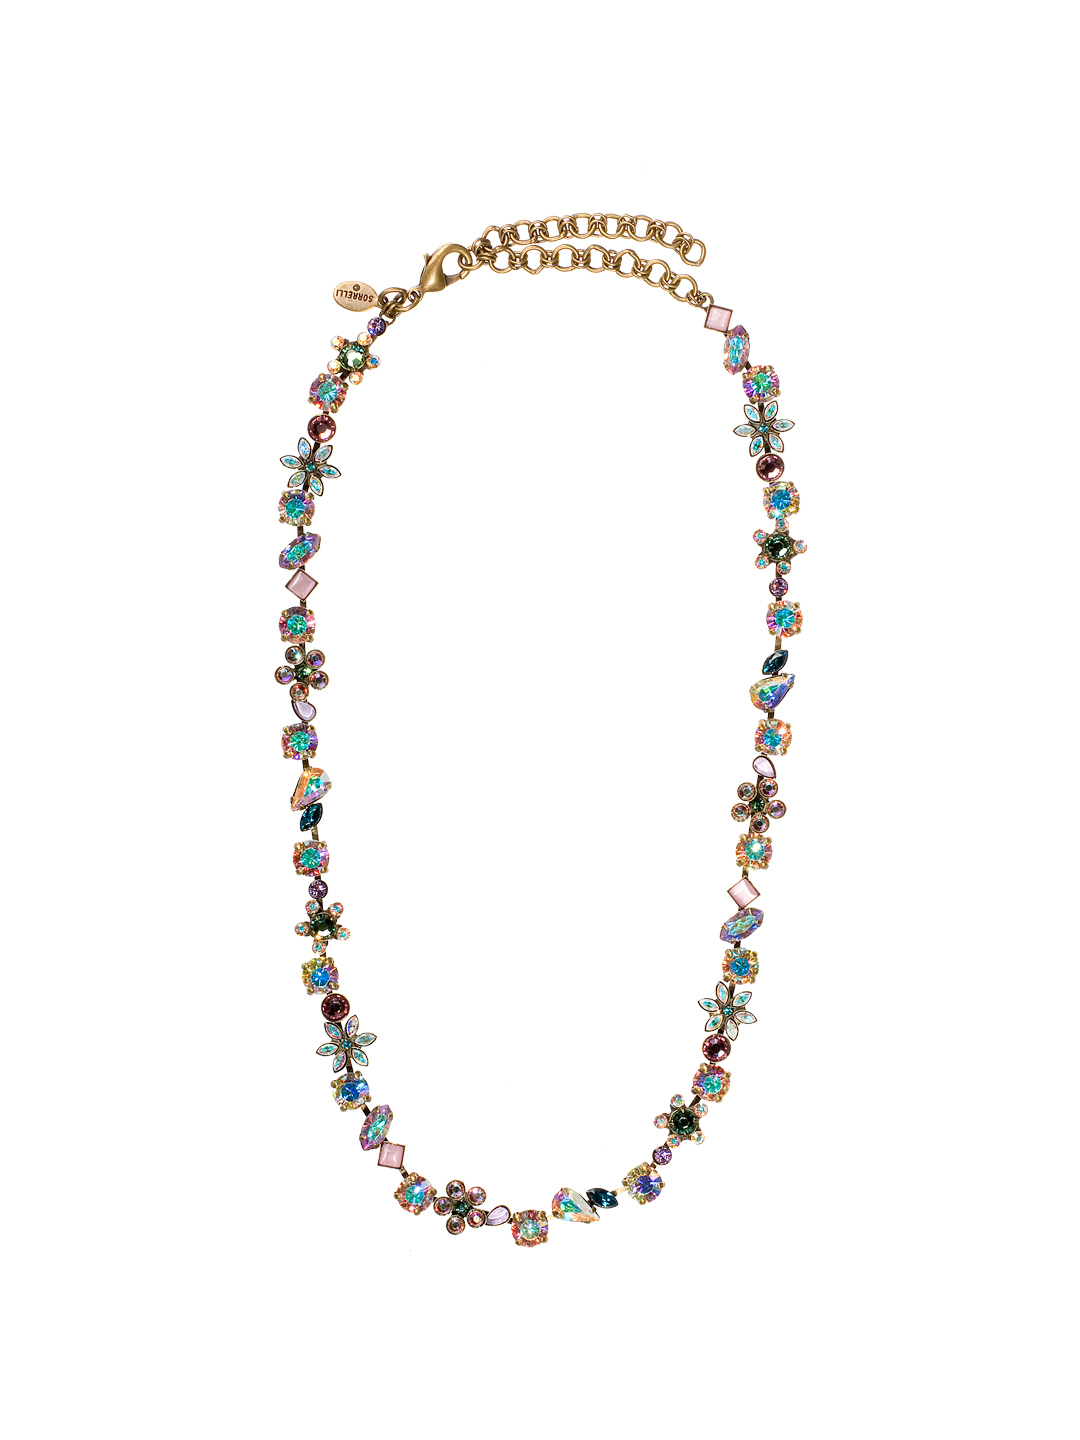 6c555aa78 Classic Swarovski Crystal and Opaque Stone Floral Necklace in Smitten